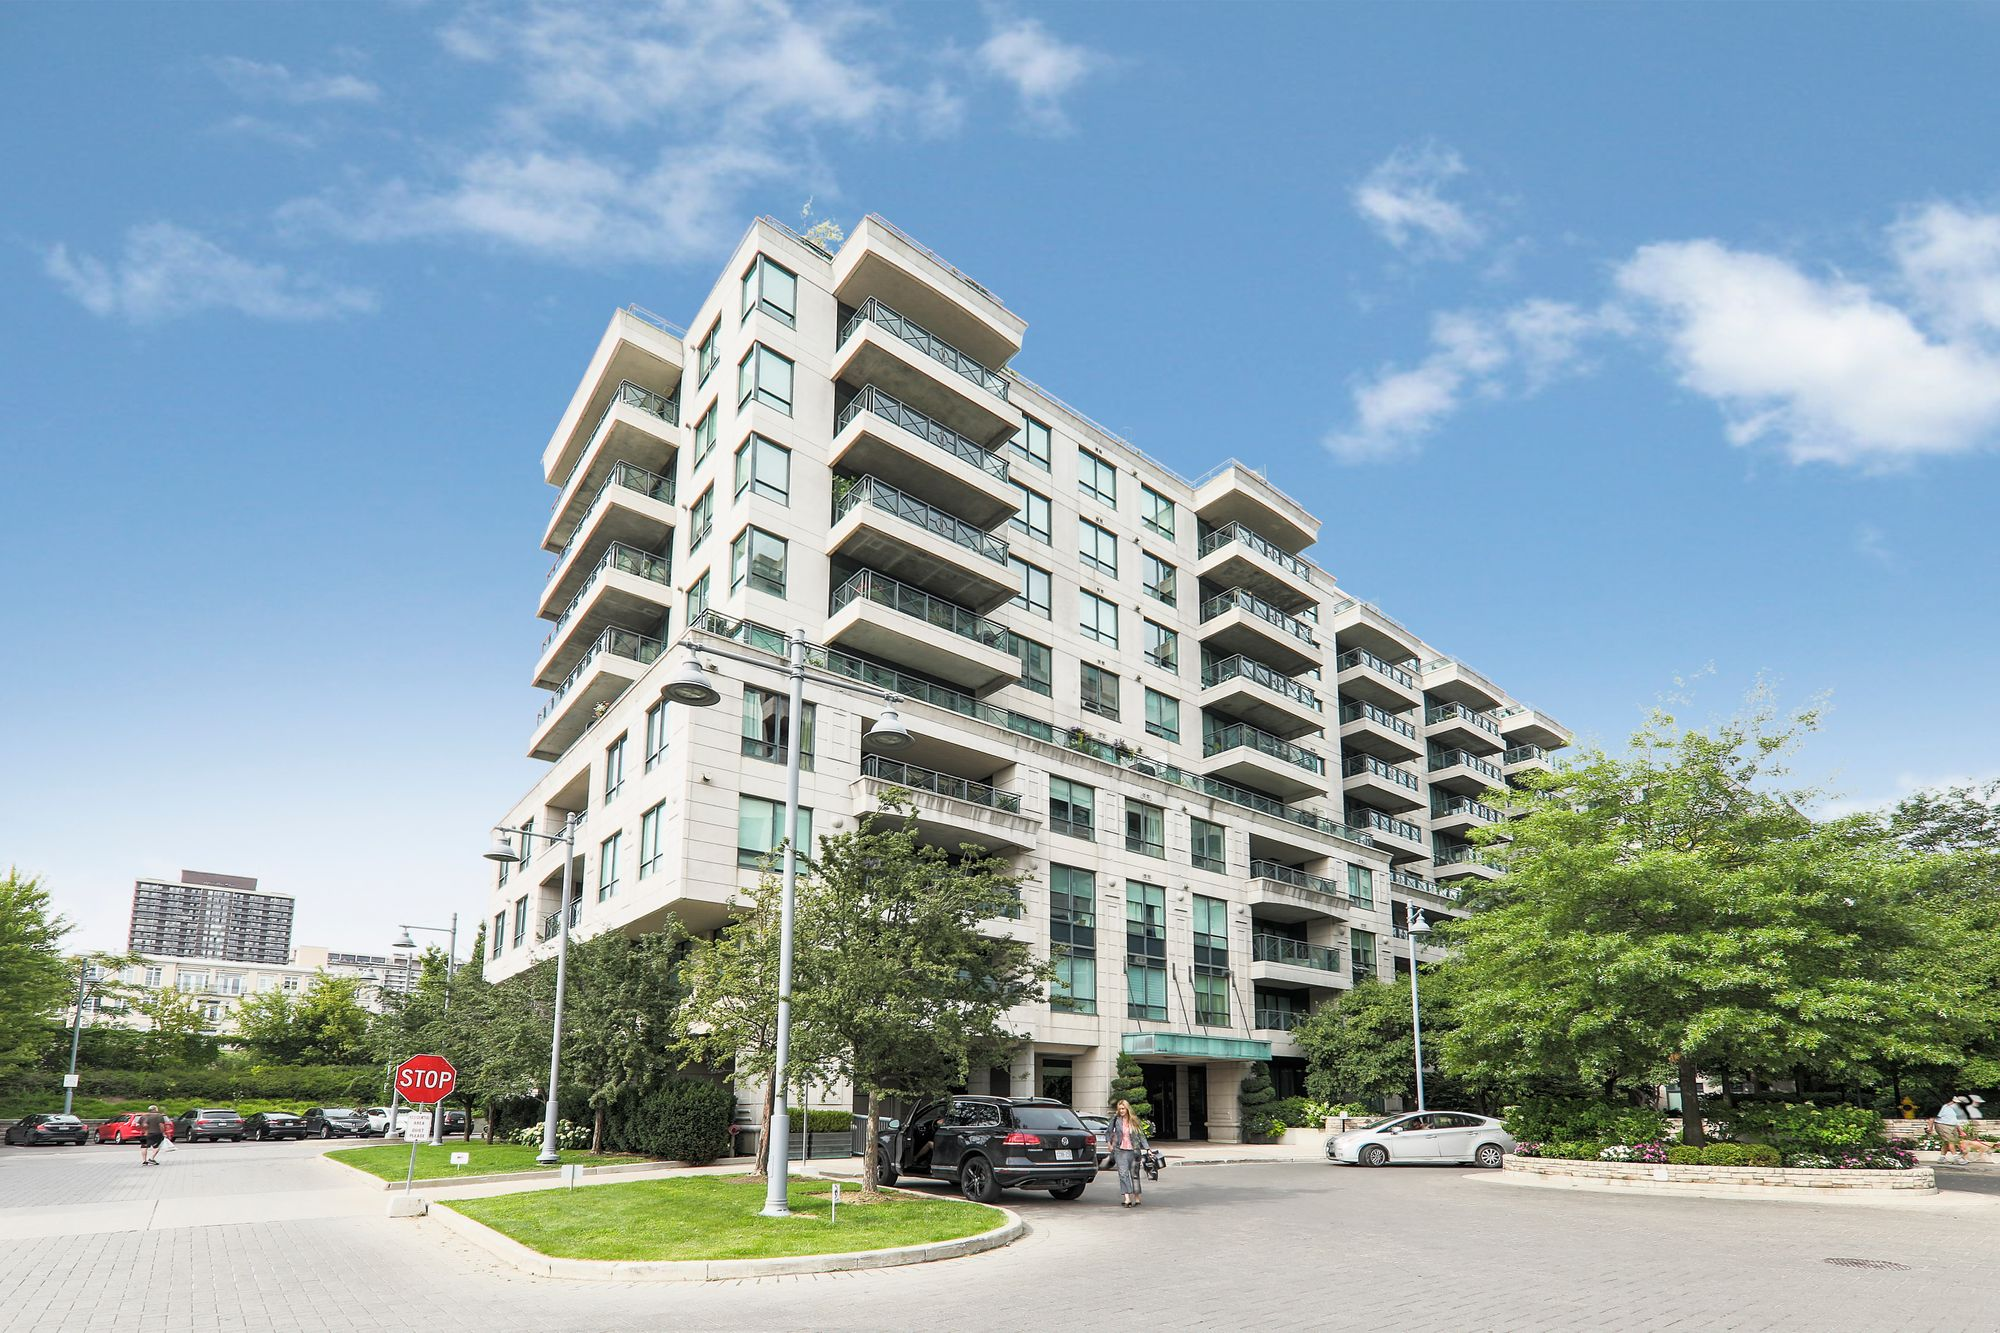 20 Scrivener Sq. This condo at Thornwood One is located in  Midtown, Toronto - image #1 of 5 by Strata.ca